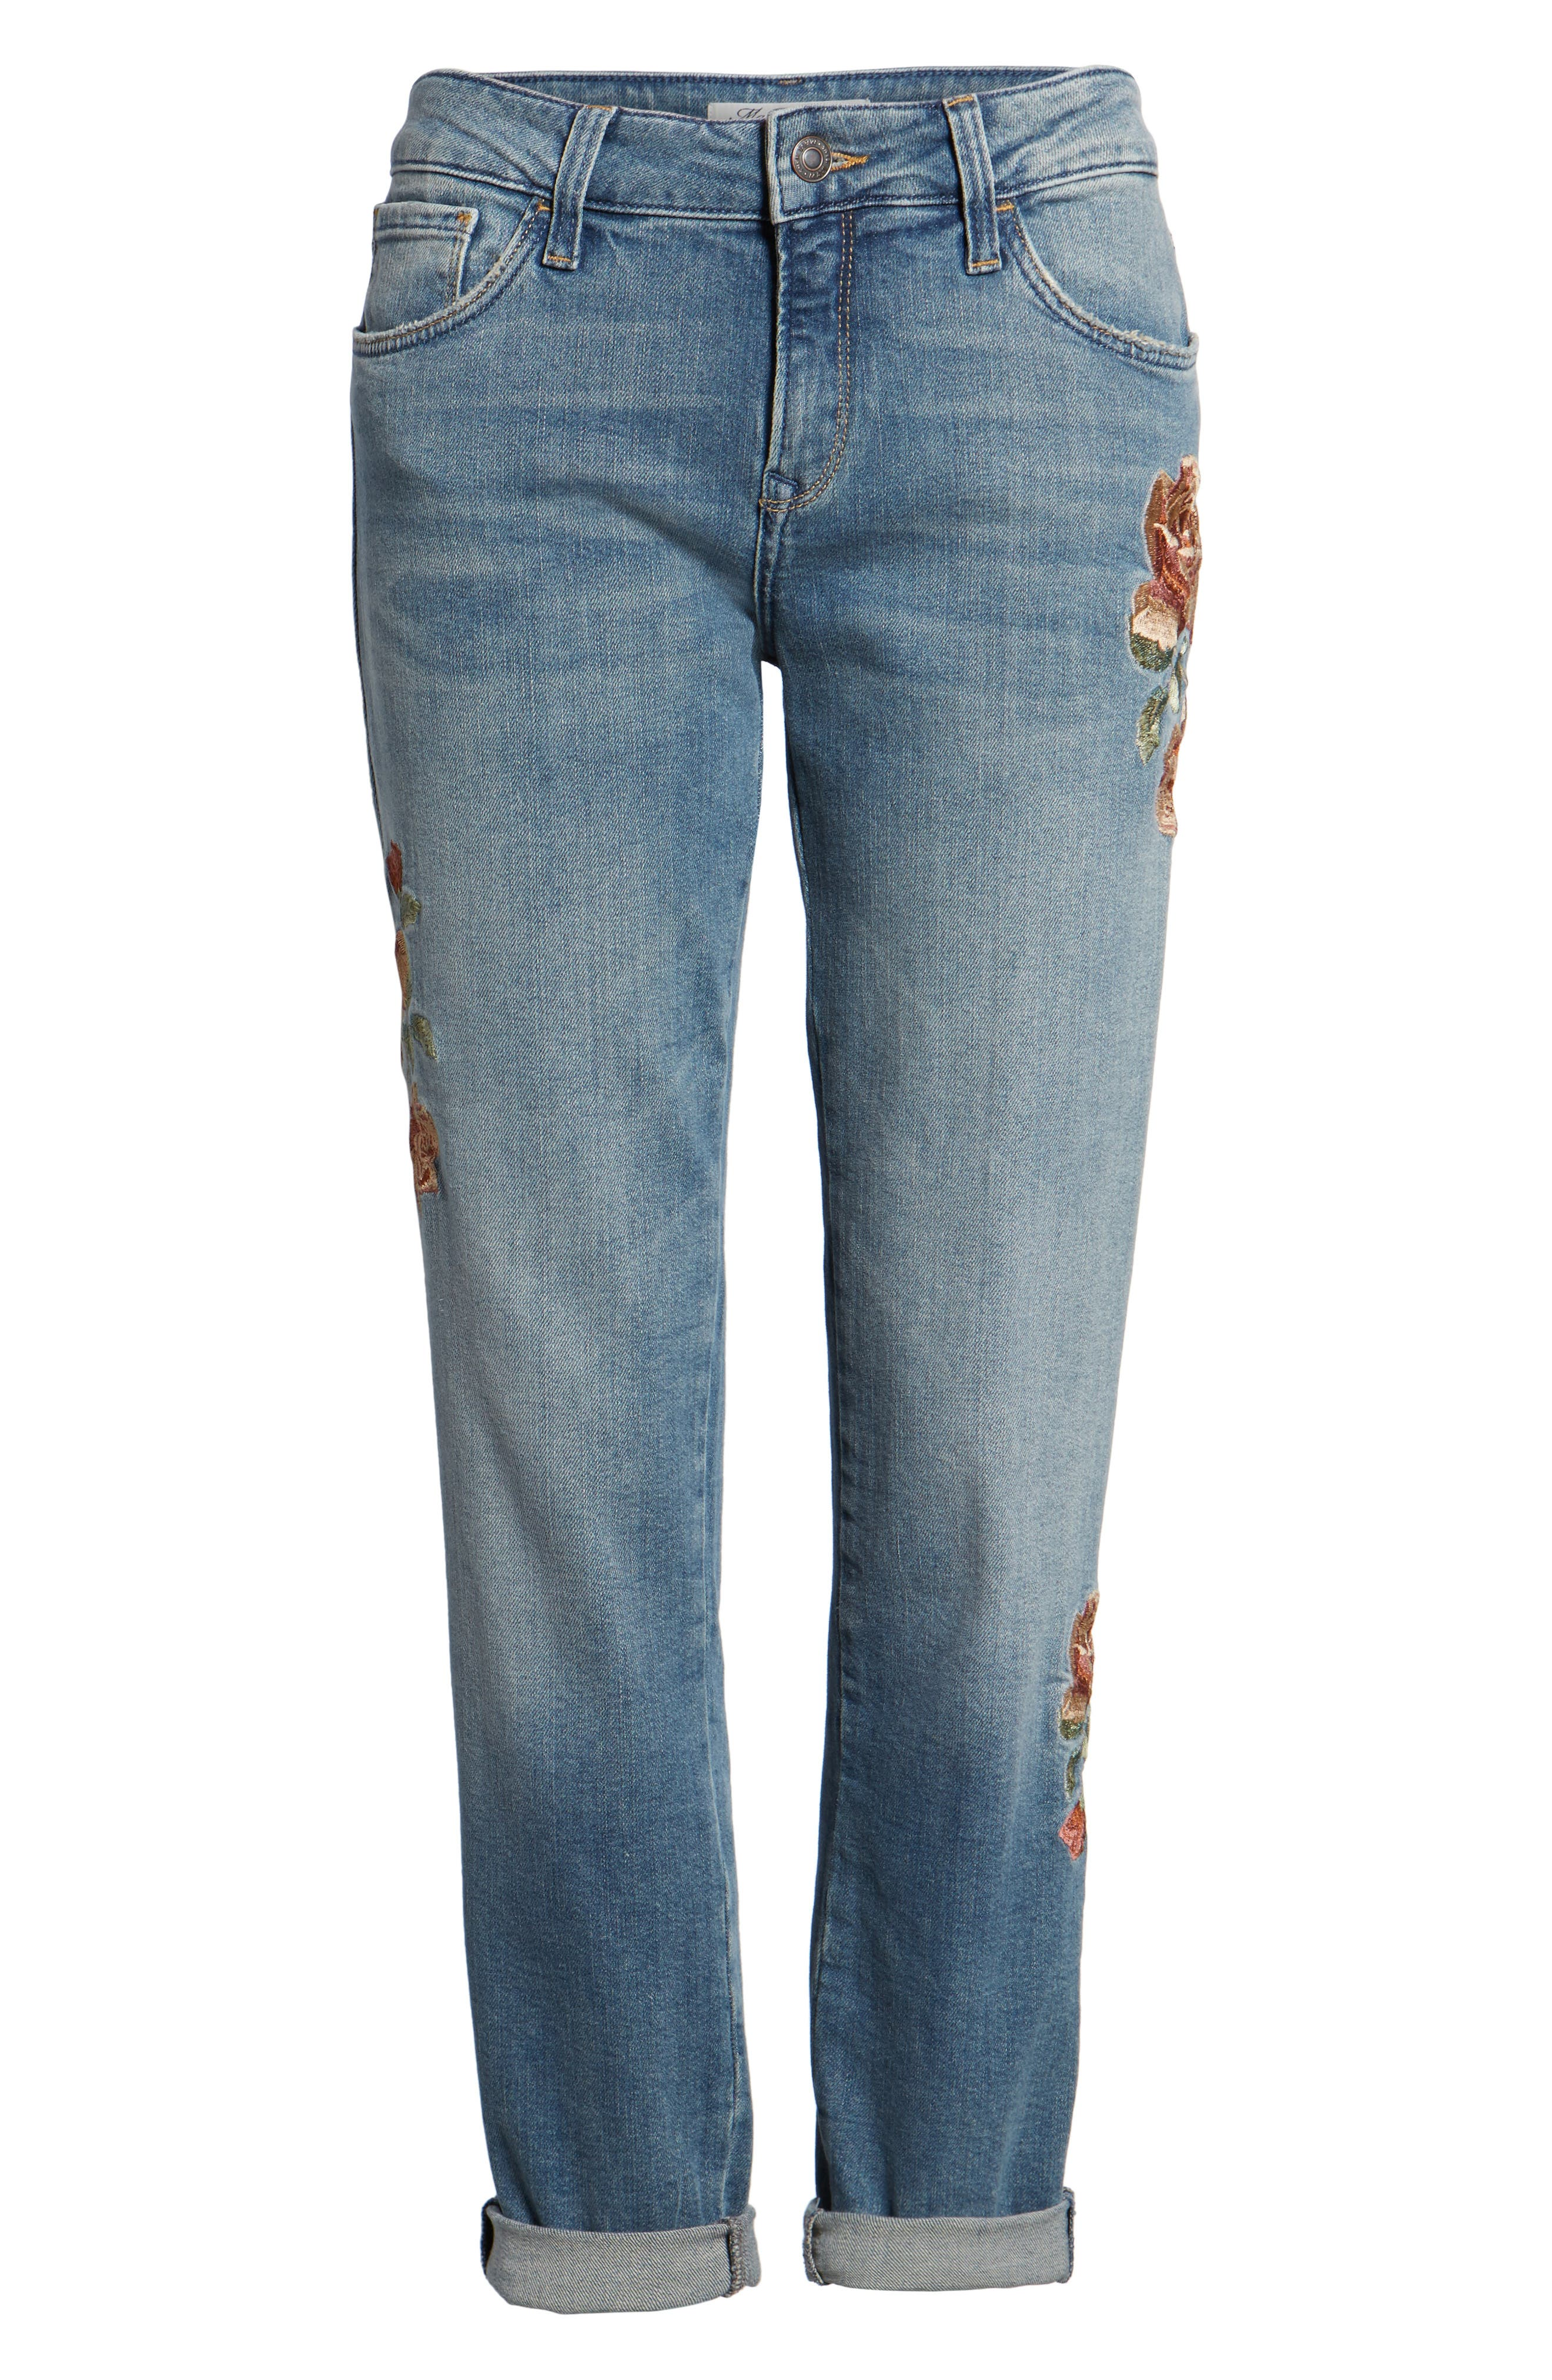 Ada Embroidered Boyfriend Jeans,                             Alternate thumbnail 6, color,                             420